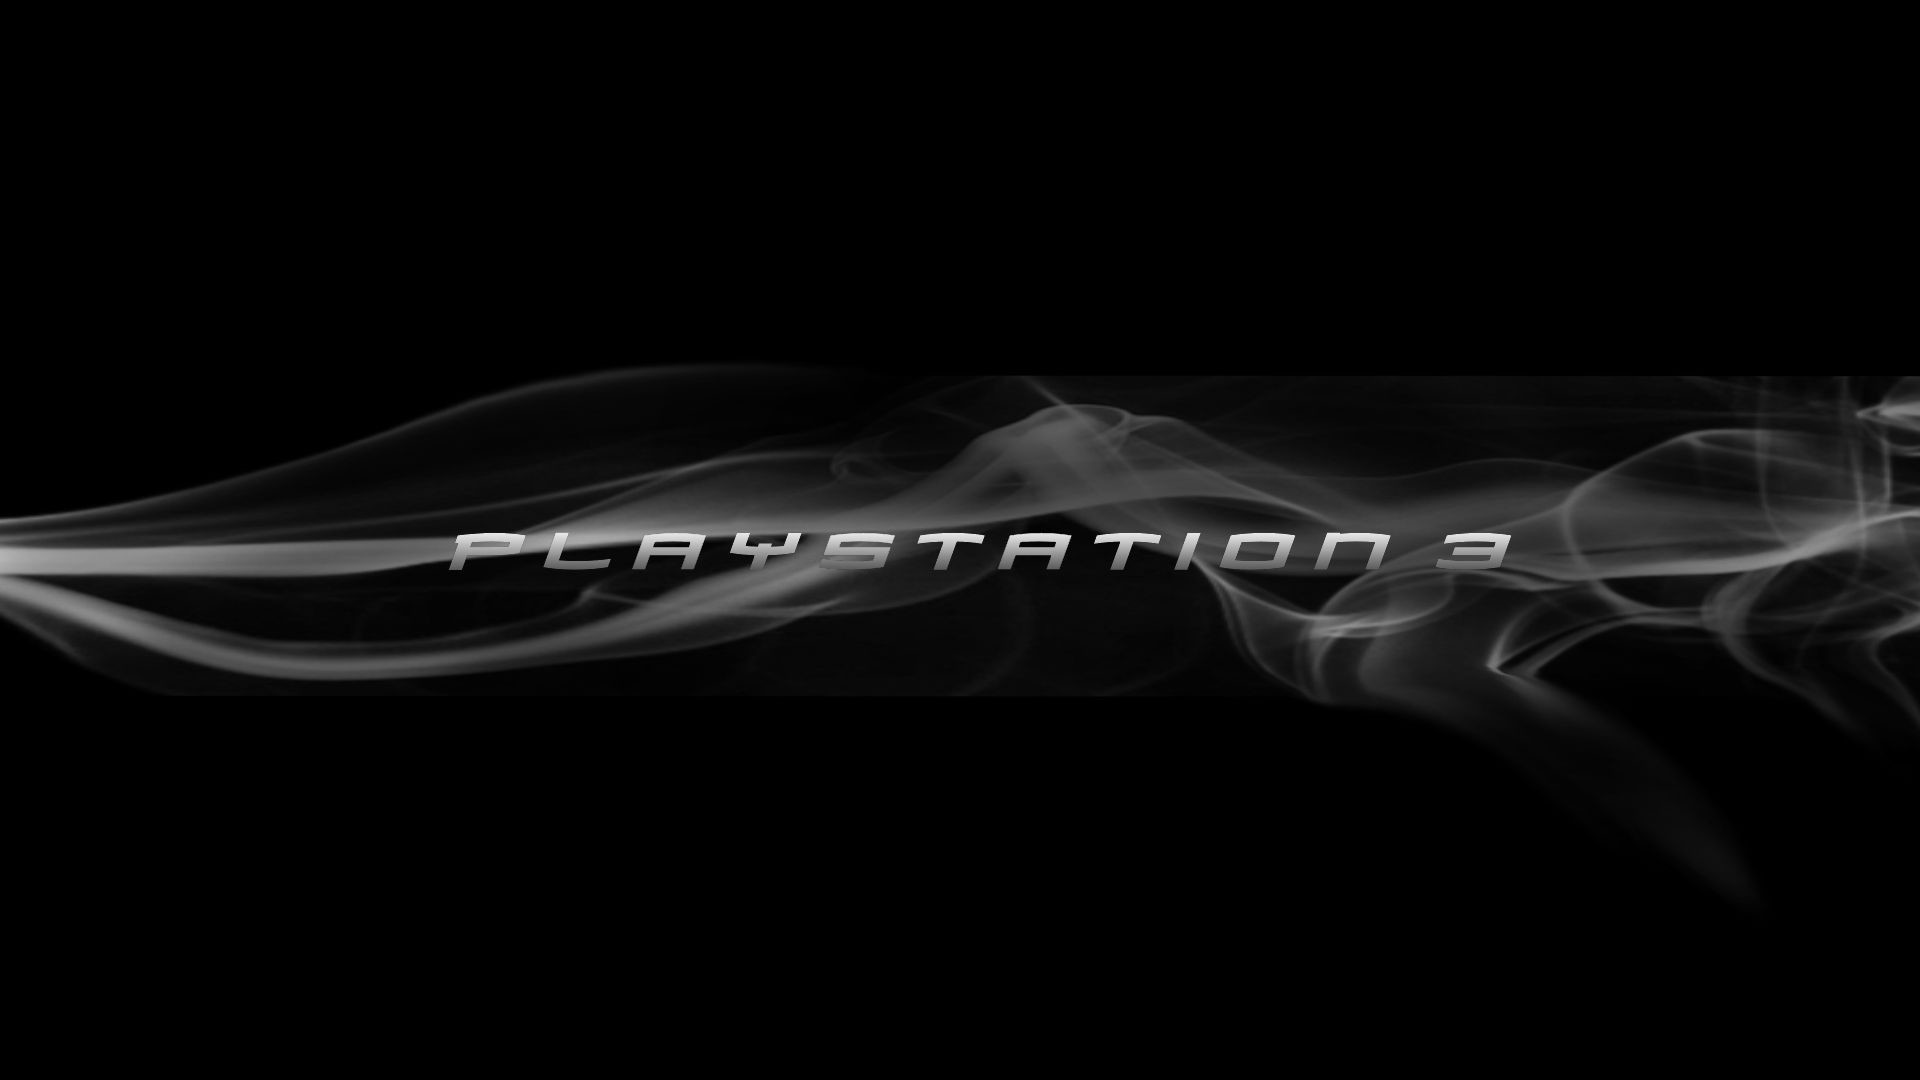 1920x1080 PlayStation 3 Wallpapers 1080p - Wallpaper Cave